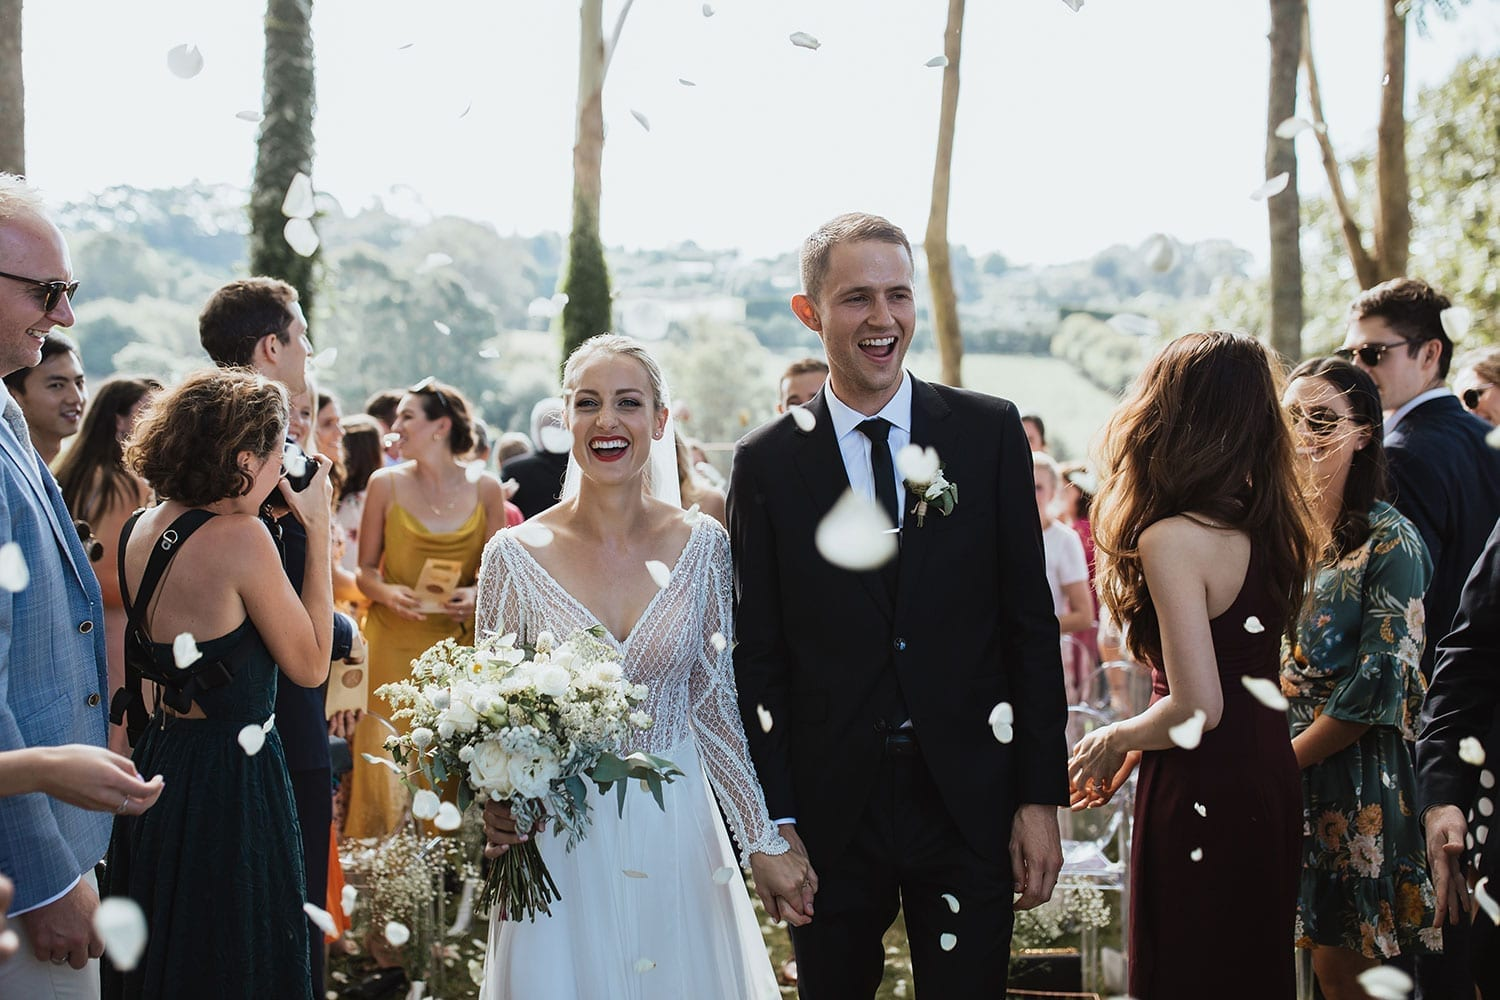 Vinka Design Features Real Weddings - Bride in custom made gown with bold lace bodice with fitted, long, beaded lace sleeves. Kiss the bride. Just married - with confetti